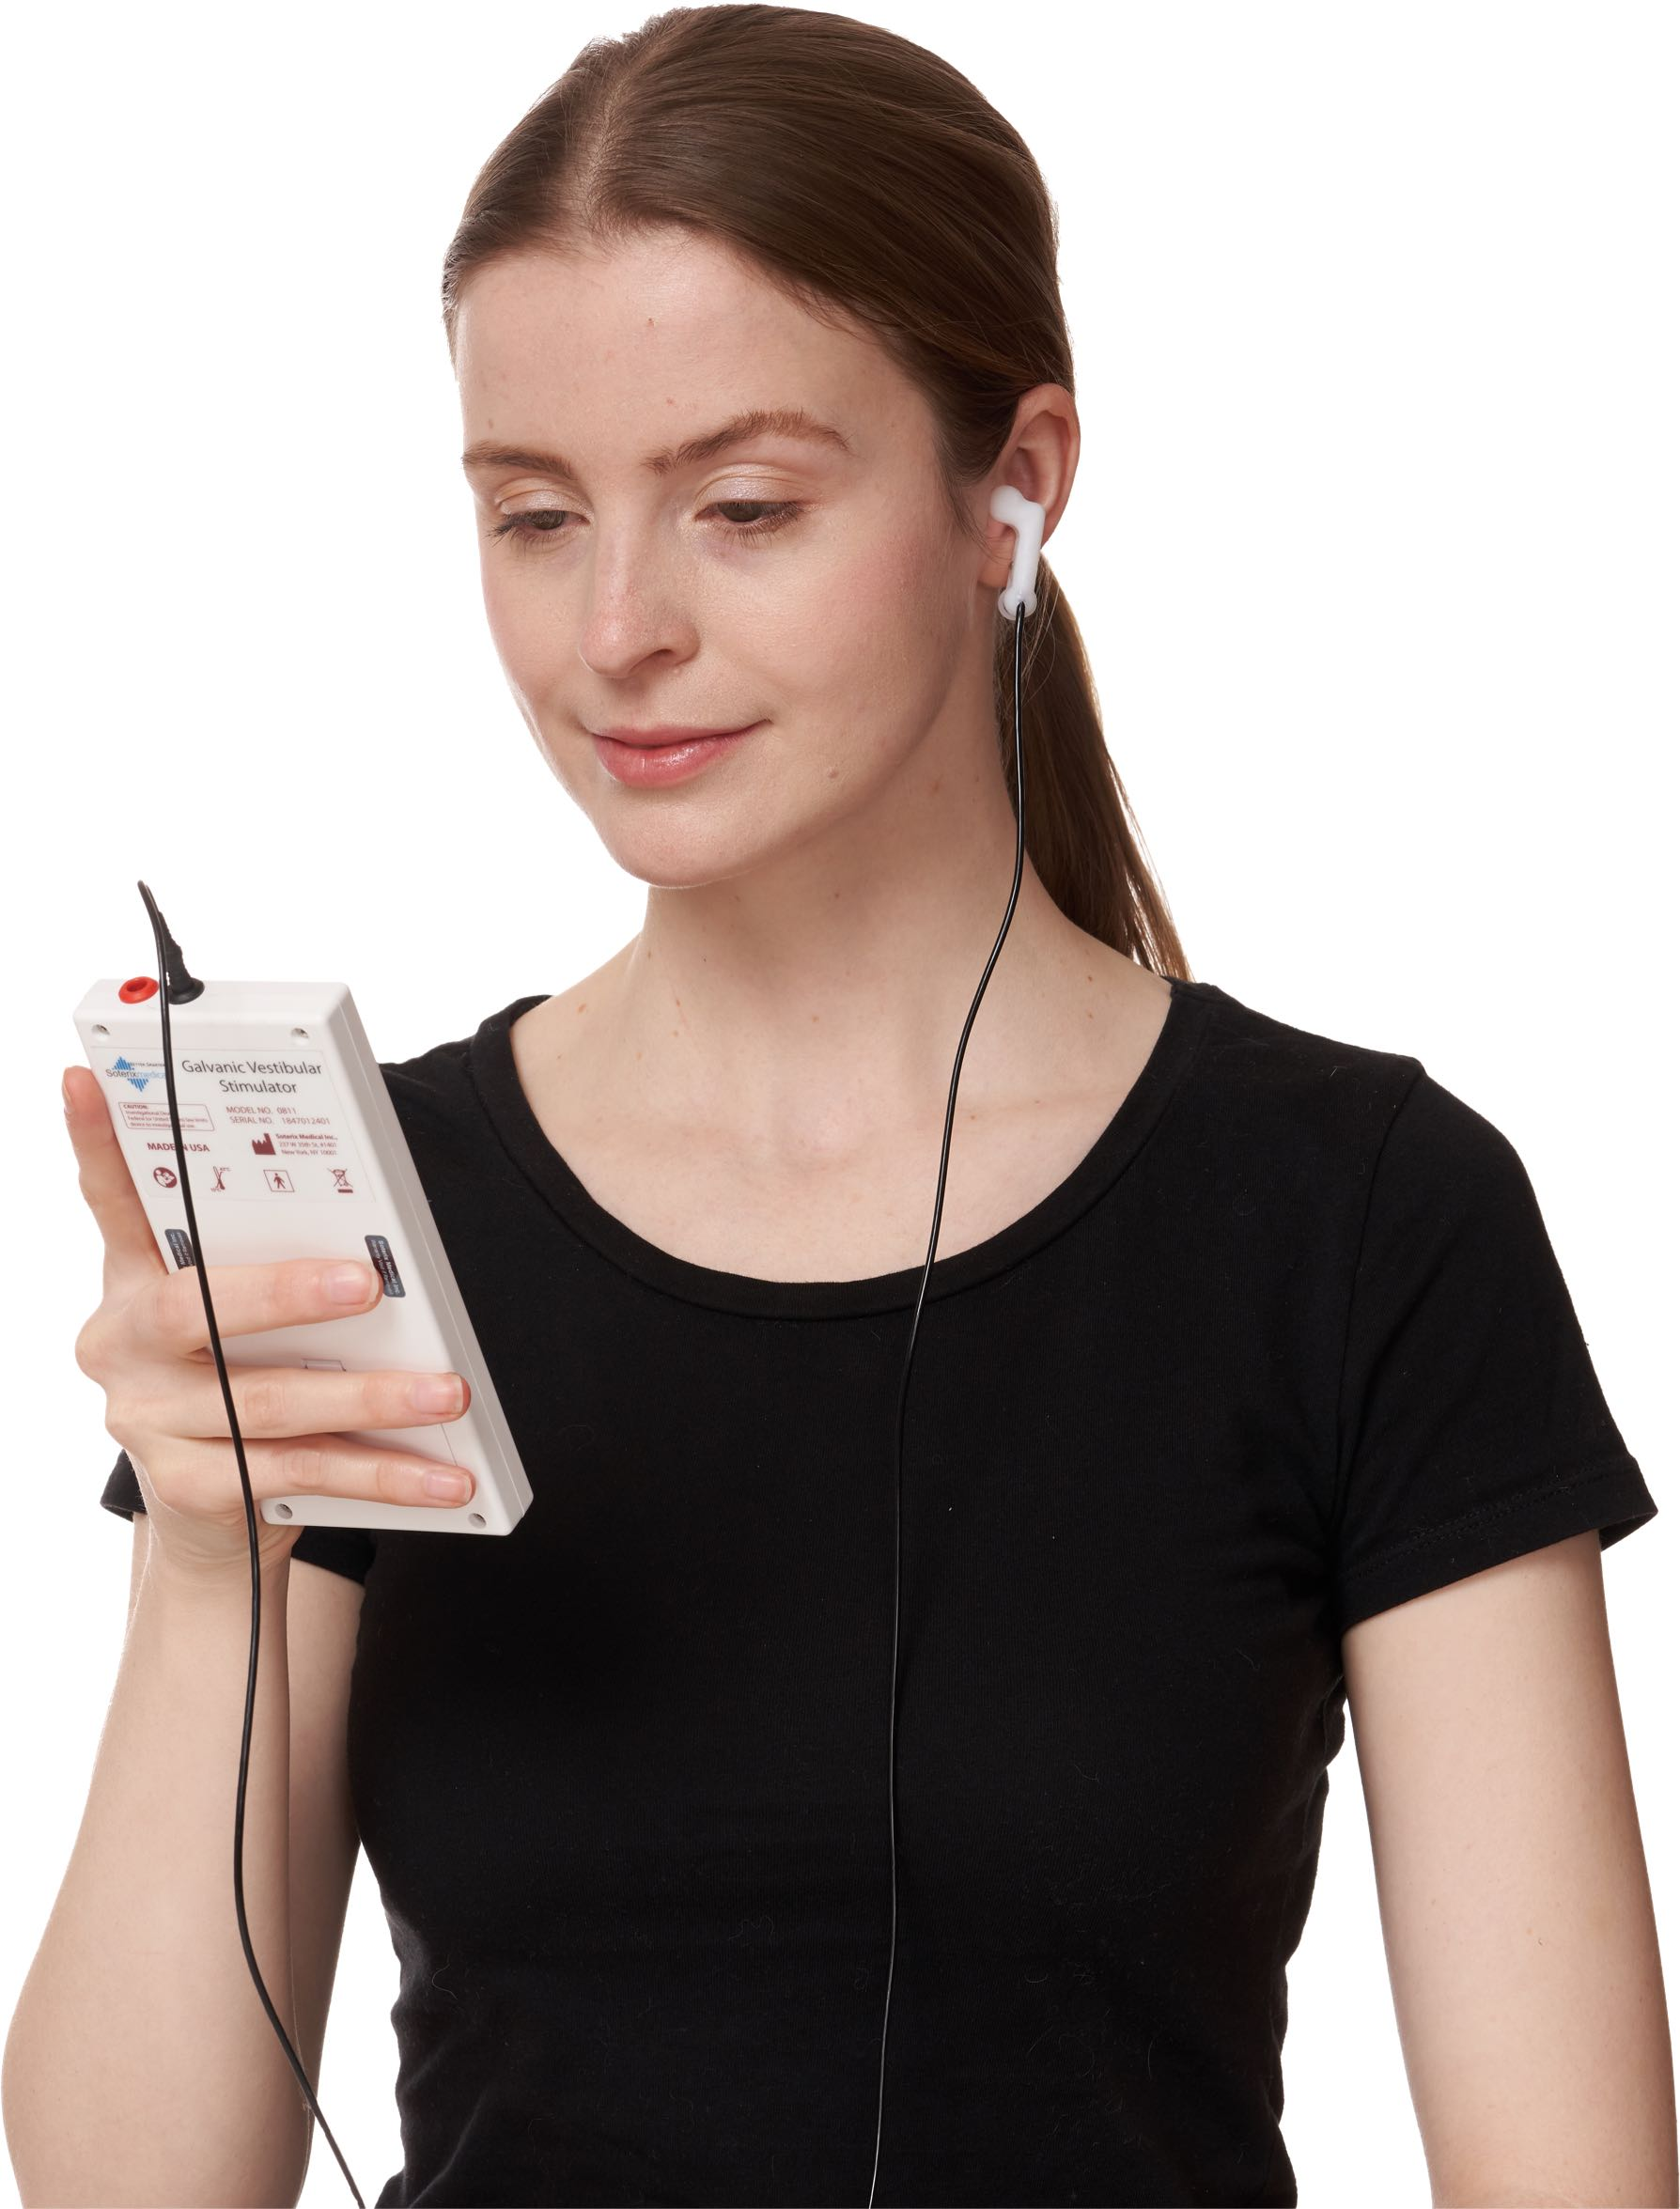 Soterix Medical Transcutaneous Auricular Vagus Nerve Stimulation (taVNS)